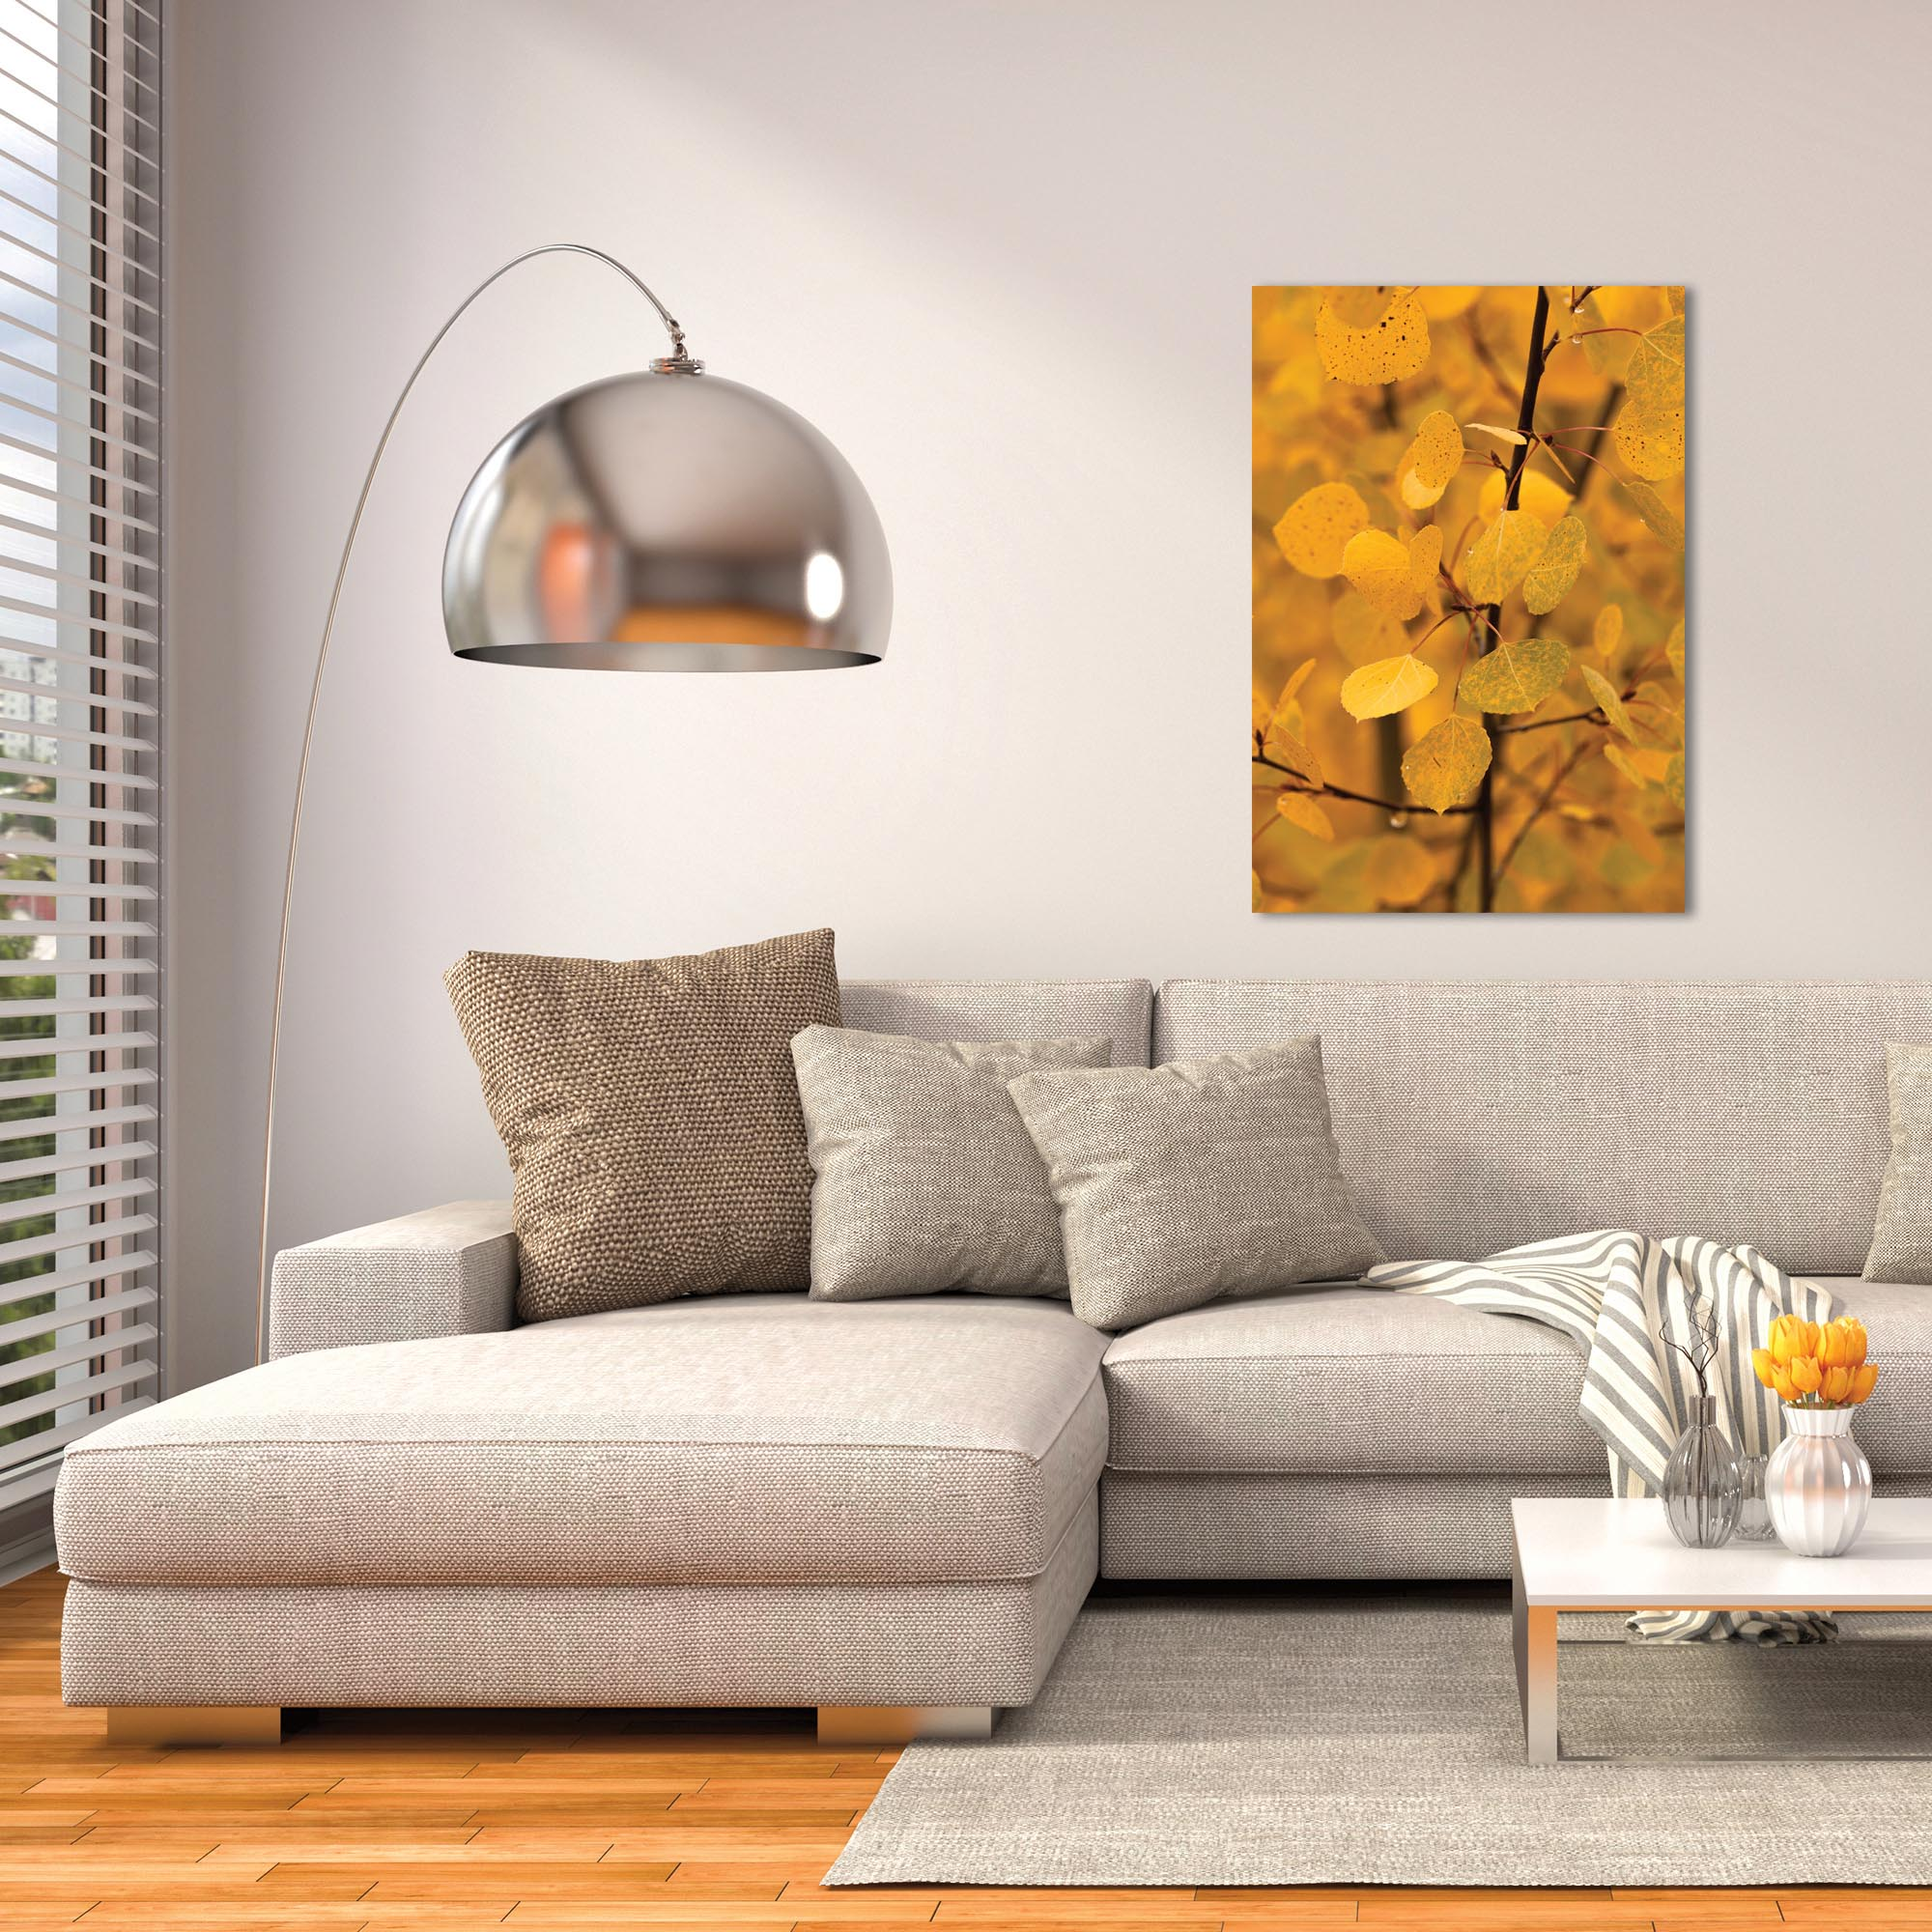 Nature Photography 'Turn to Gold' - Autumn Leaves Art on Metal or Plexiglass - Lifestyle View